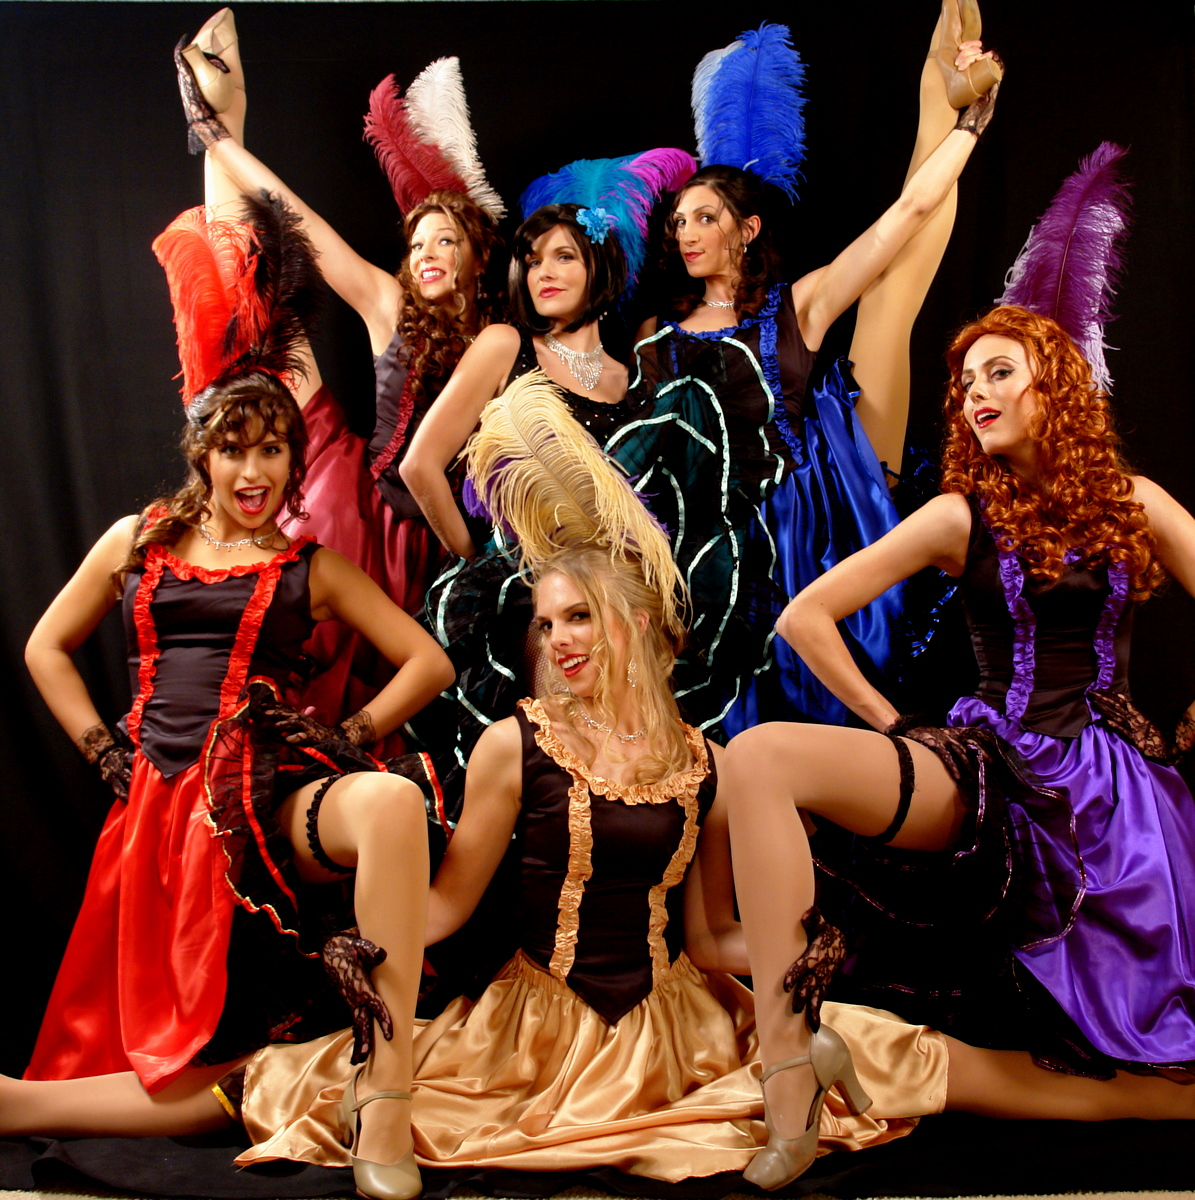 Cancan dancers are also often called in the joyful celebrations where they add fun and amazements to the events.